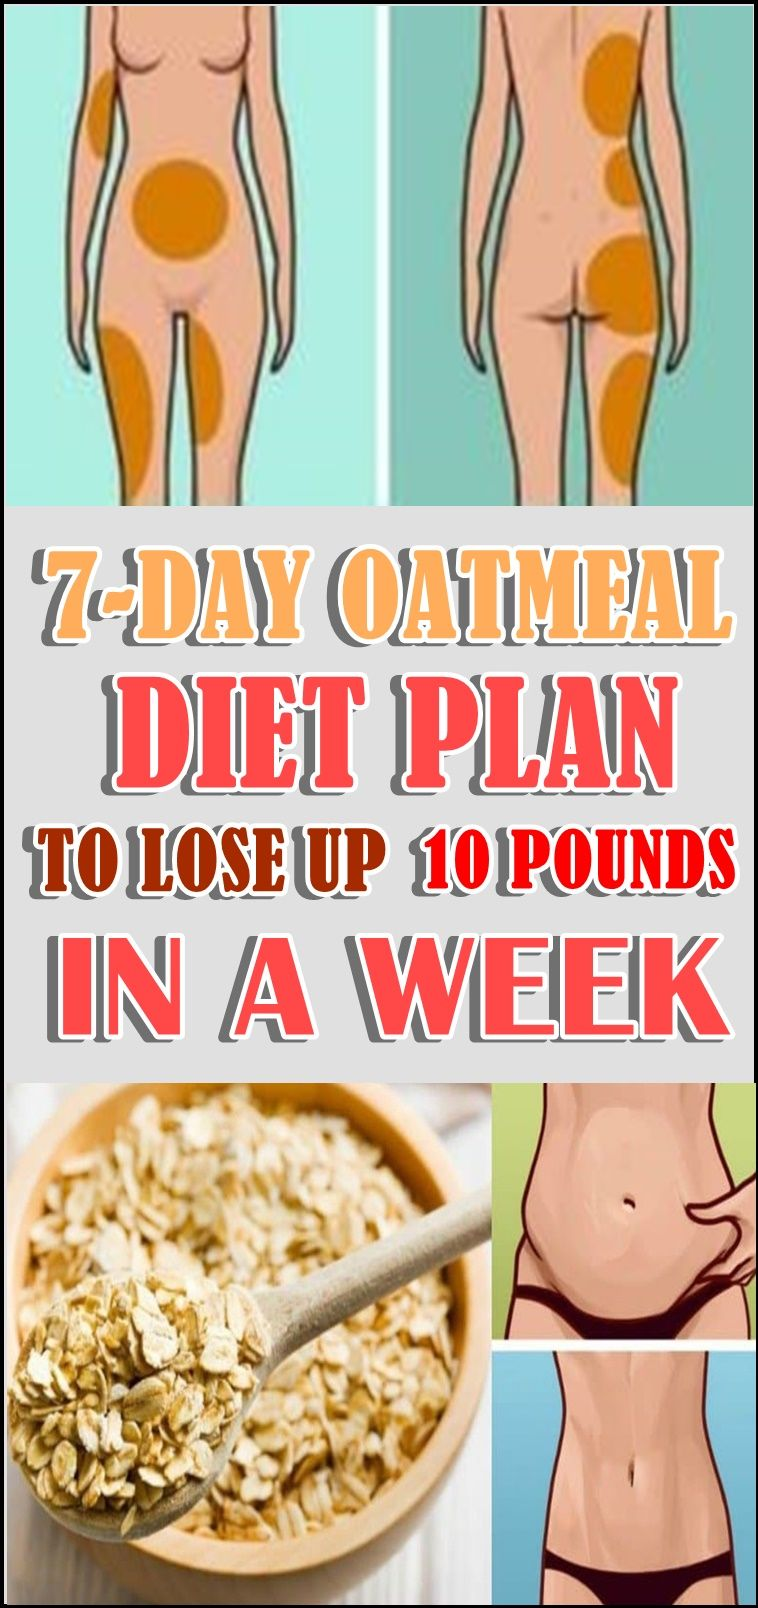 7-DAY OATMEAL DIET PLAN TO LOSE UP 10 POUNDS IN A WEEK ...